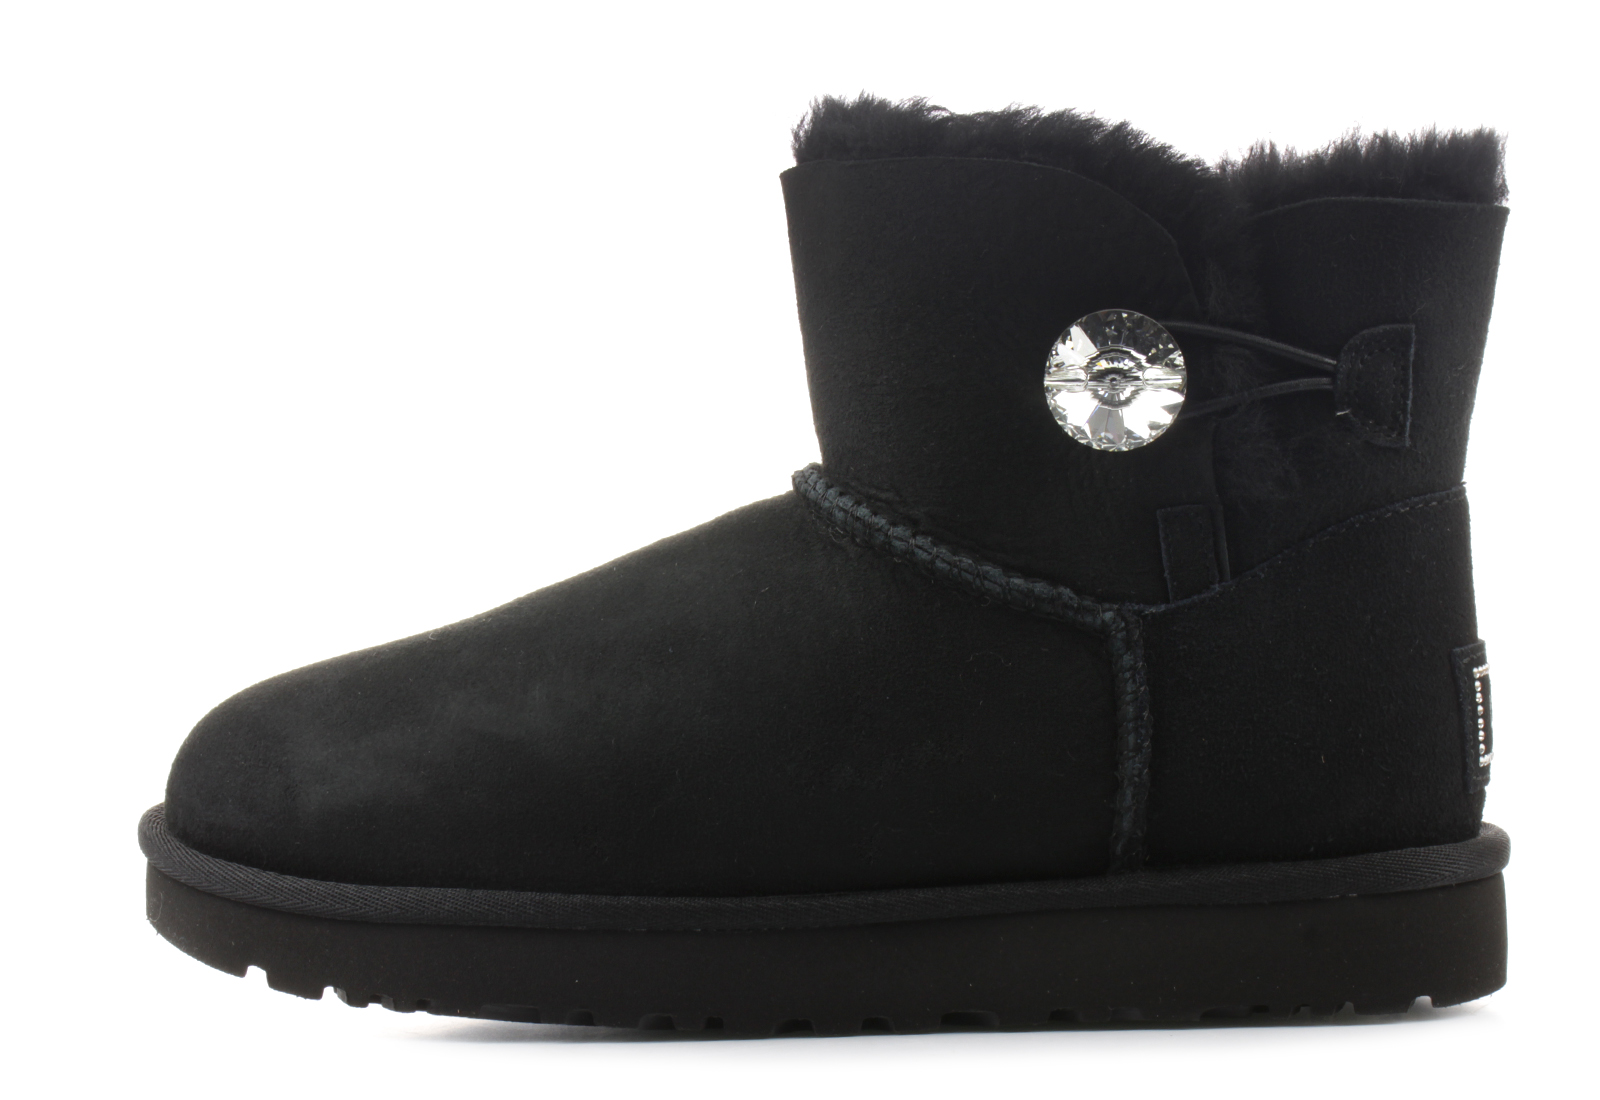 3447c25641f Ugg Boots - Mini Bailey Button Bling - 1016554-BLK - Online shop for  sneakers, shoes and boots